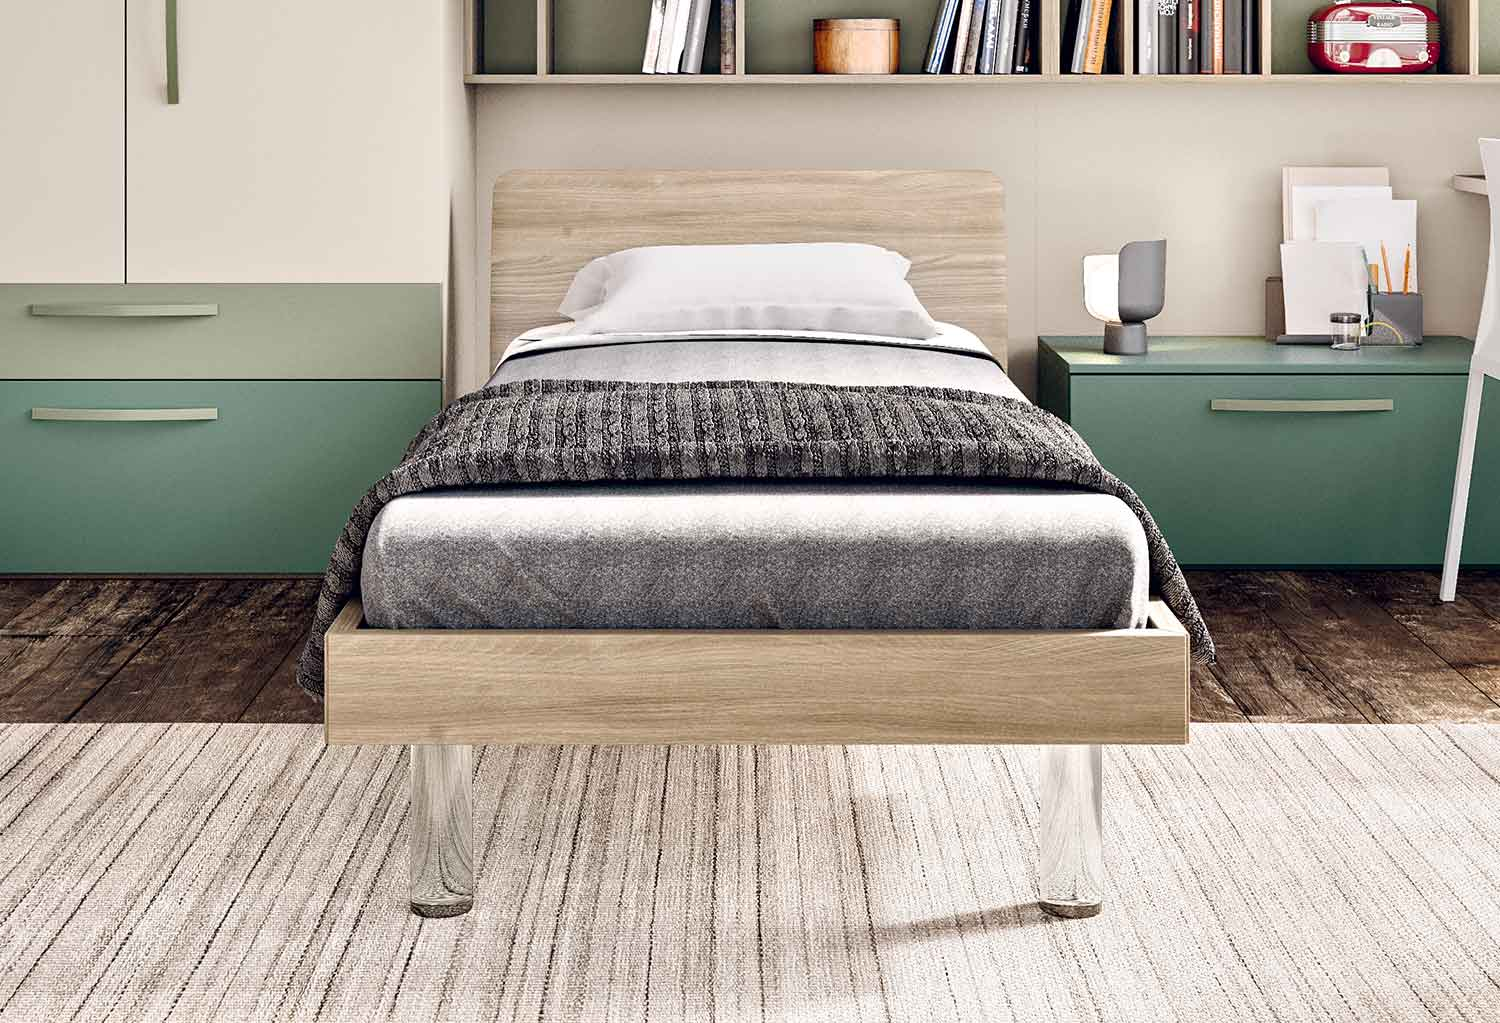 Tonga contemporary single bed frame with a sleek curved headboard in elm wood effect and clear acrylic legs